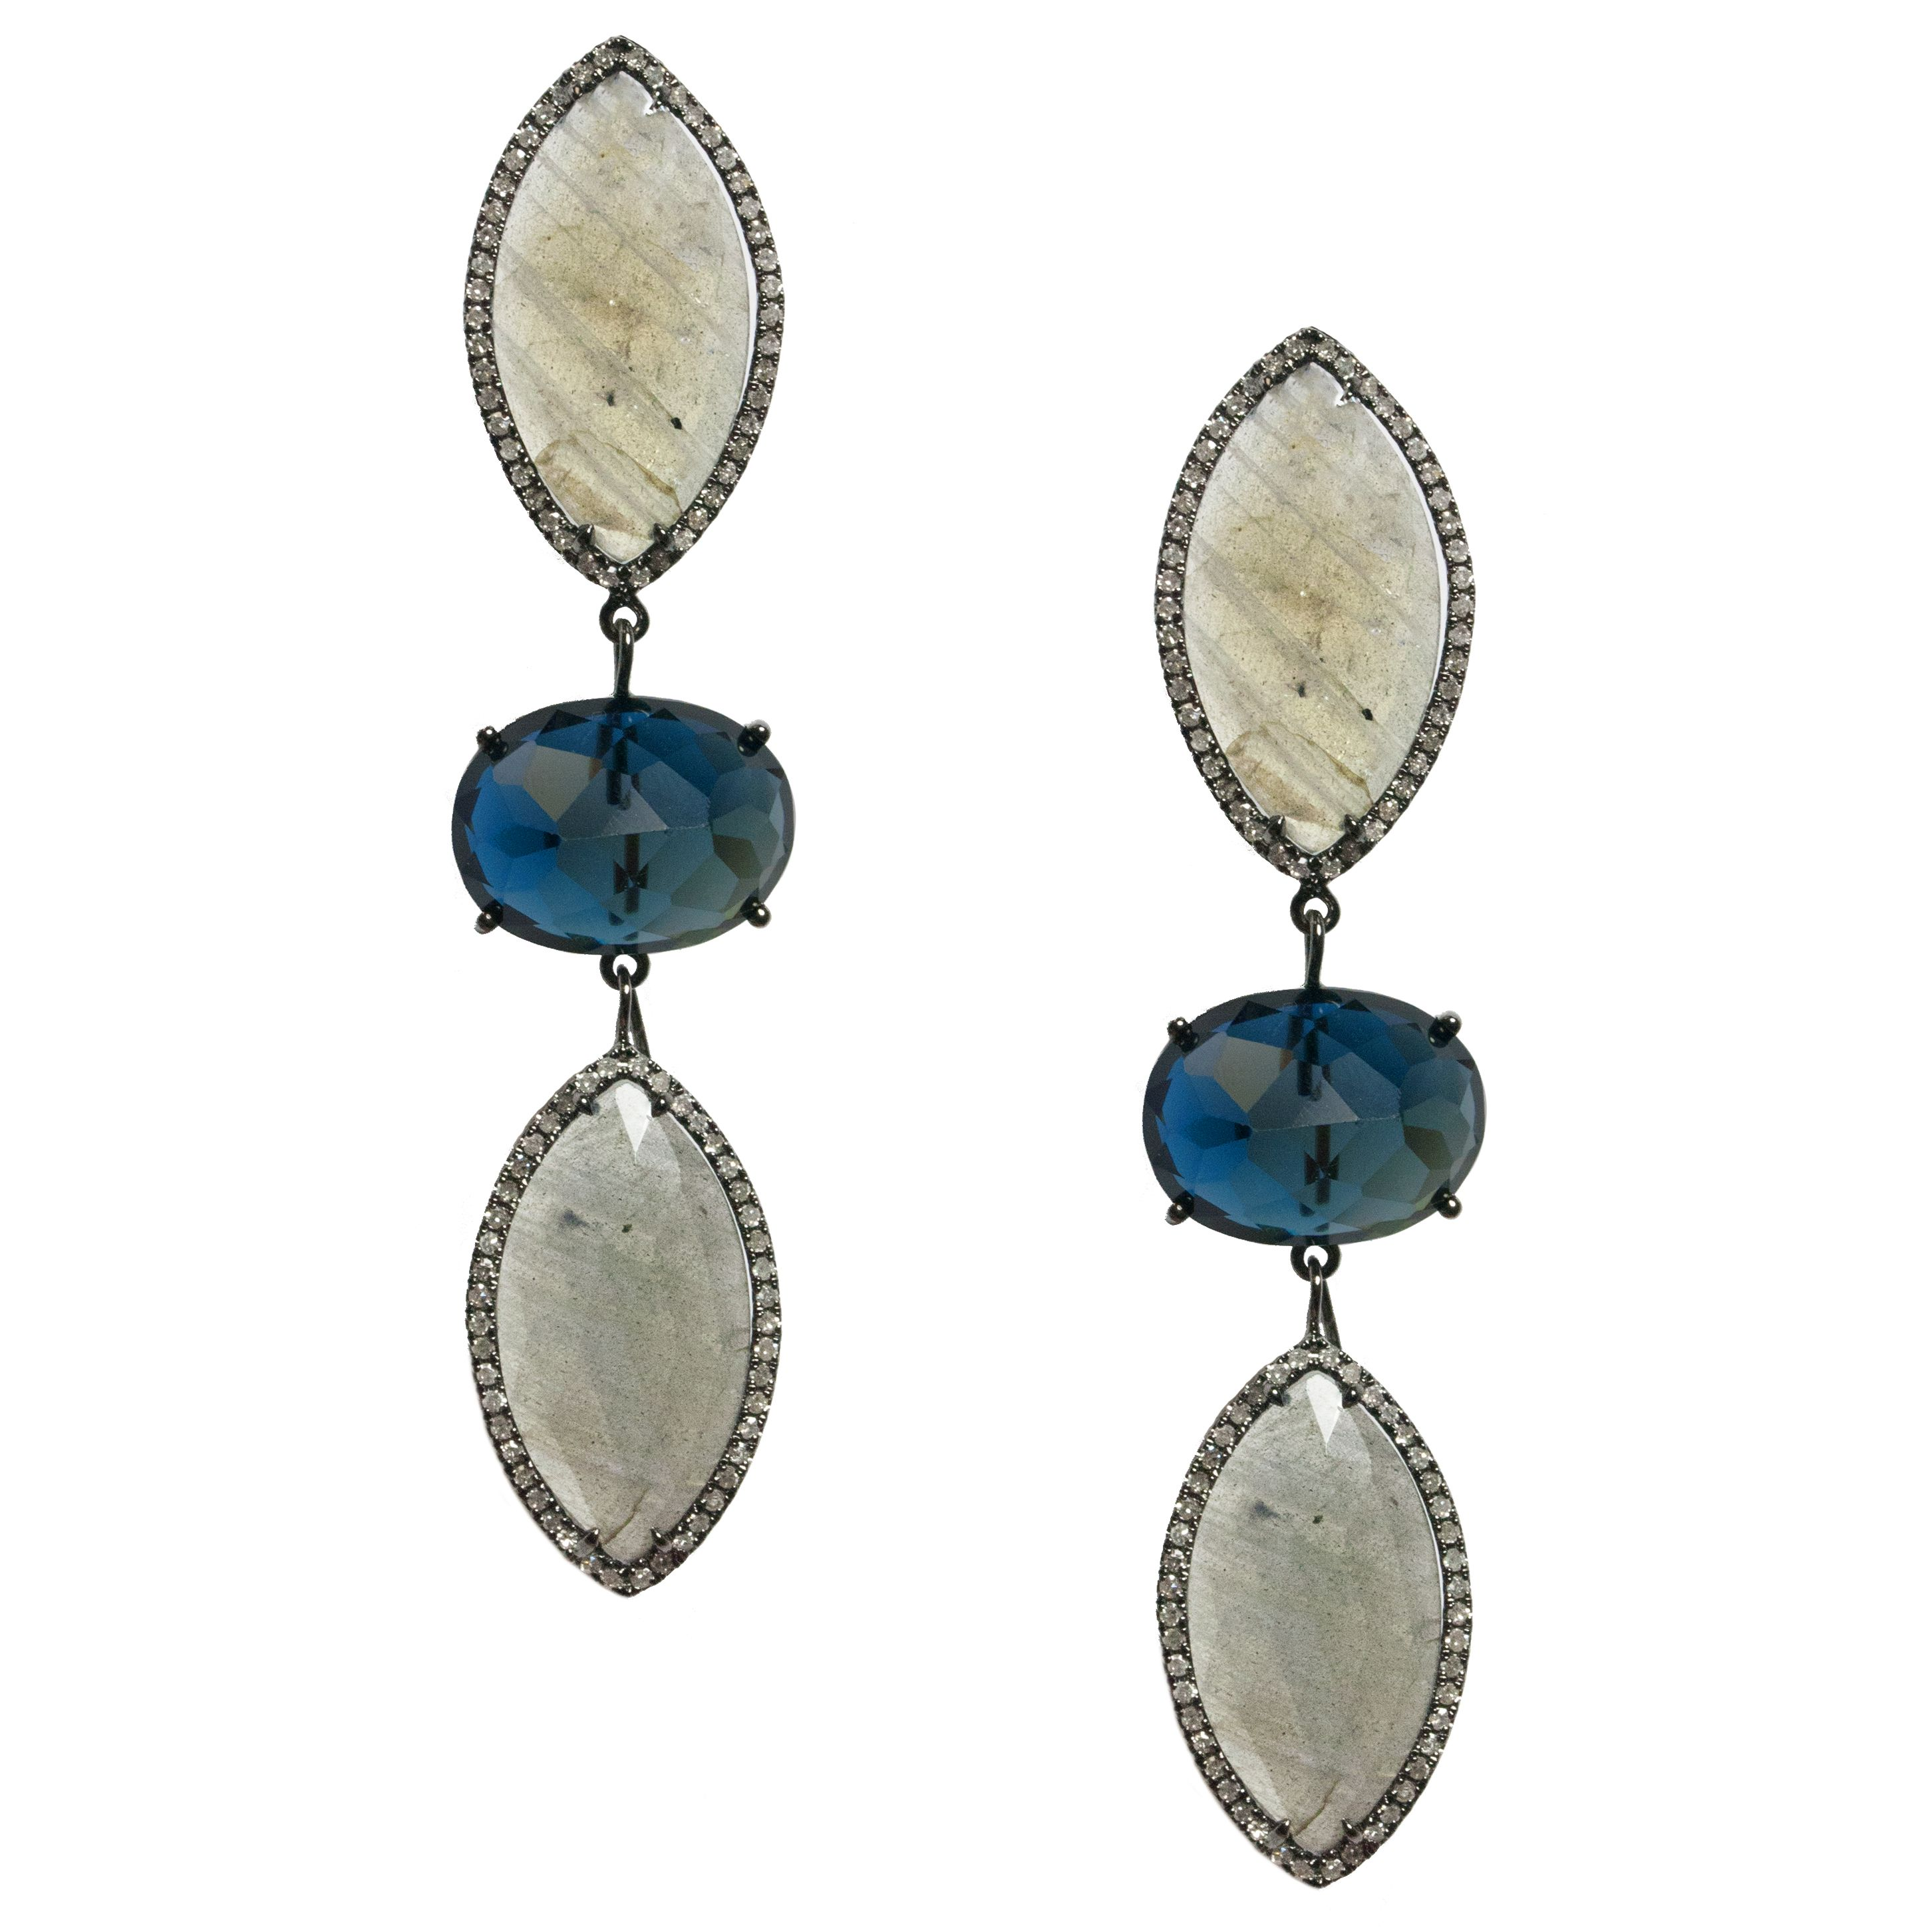 Nora Earrings - Labradorite, London Blue Topaz, Diamonds, Sterling Silver - by Meredith Marks Designs